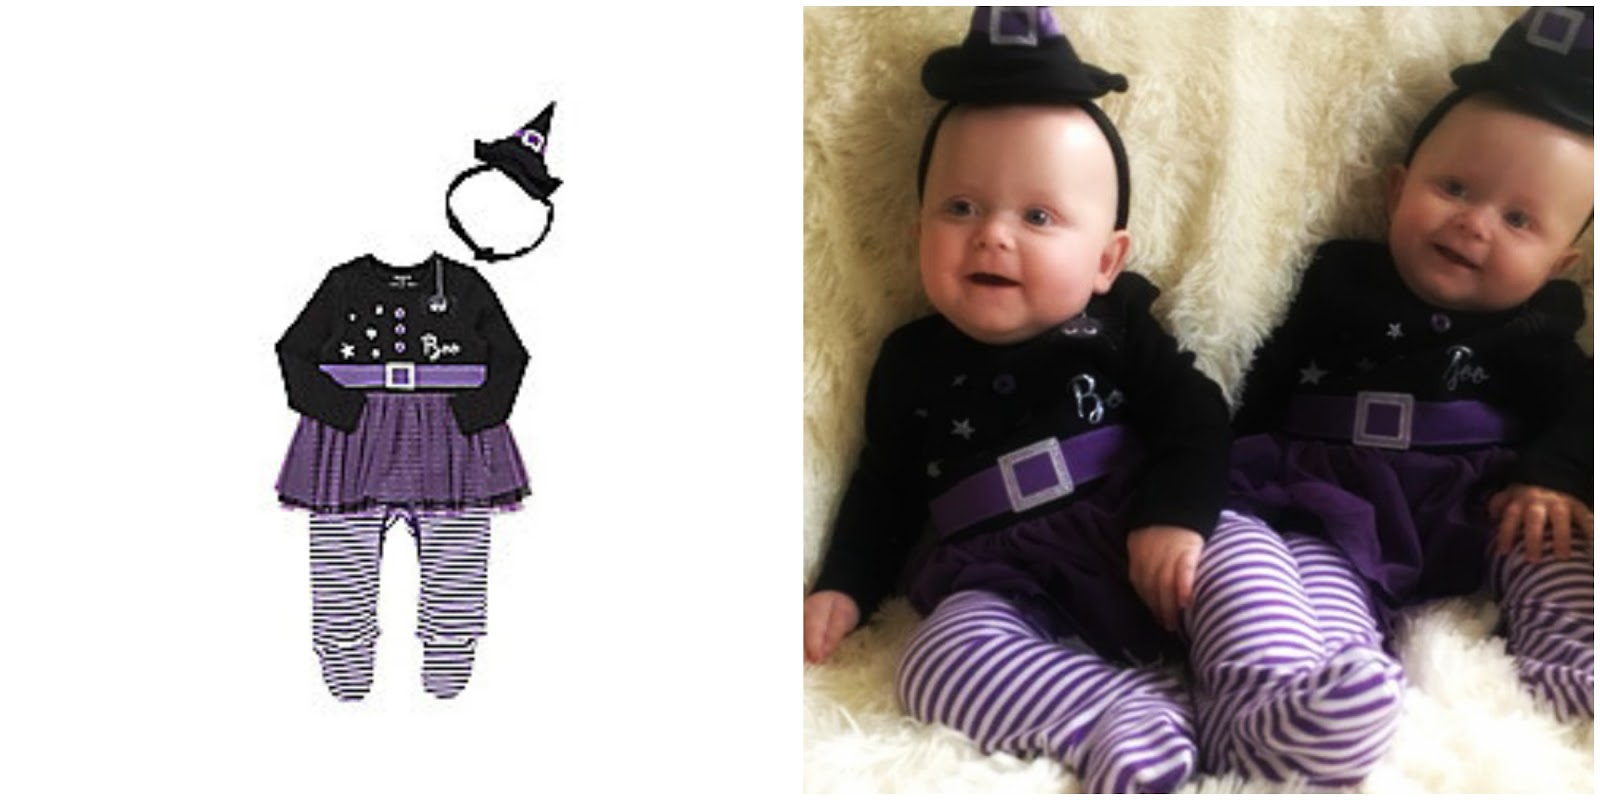 The Best Halloween Costumes for baby girls  sc 1 st  My Crazy Family Story & The Best Halloween Costumes for baby girls   My Crazy Family Story